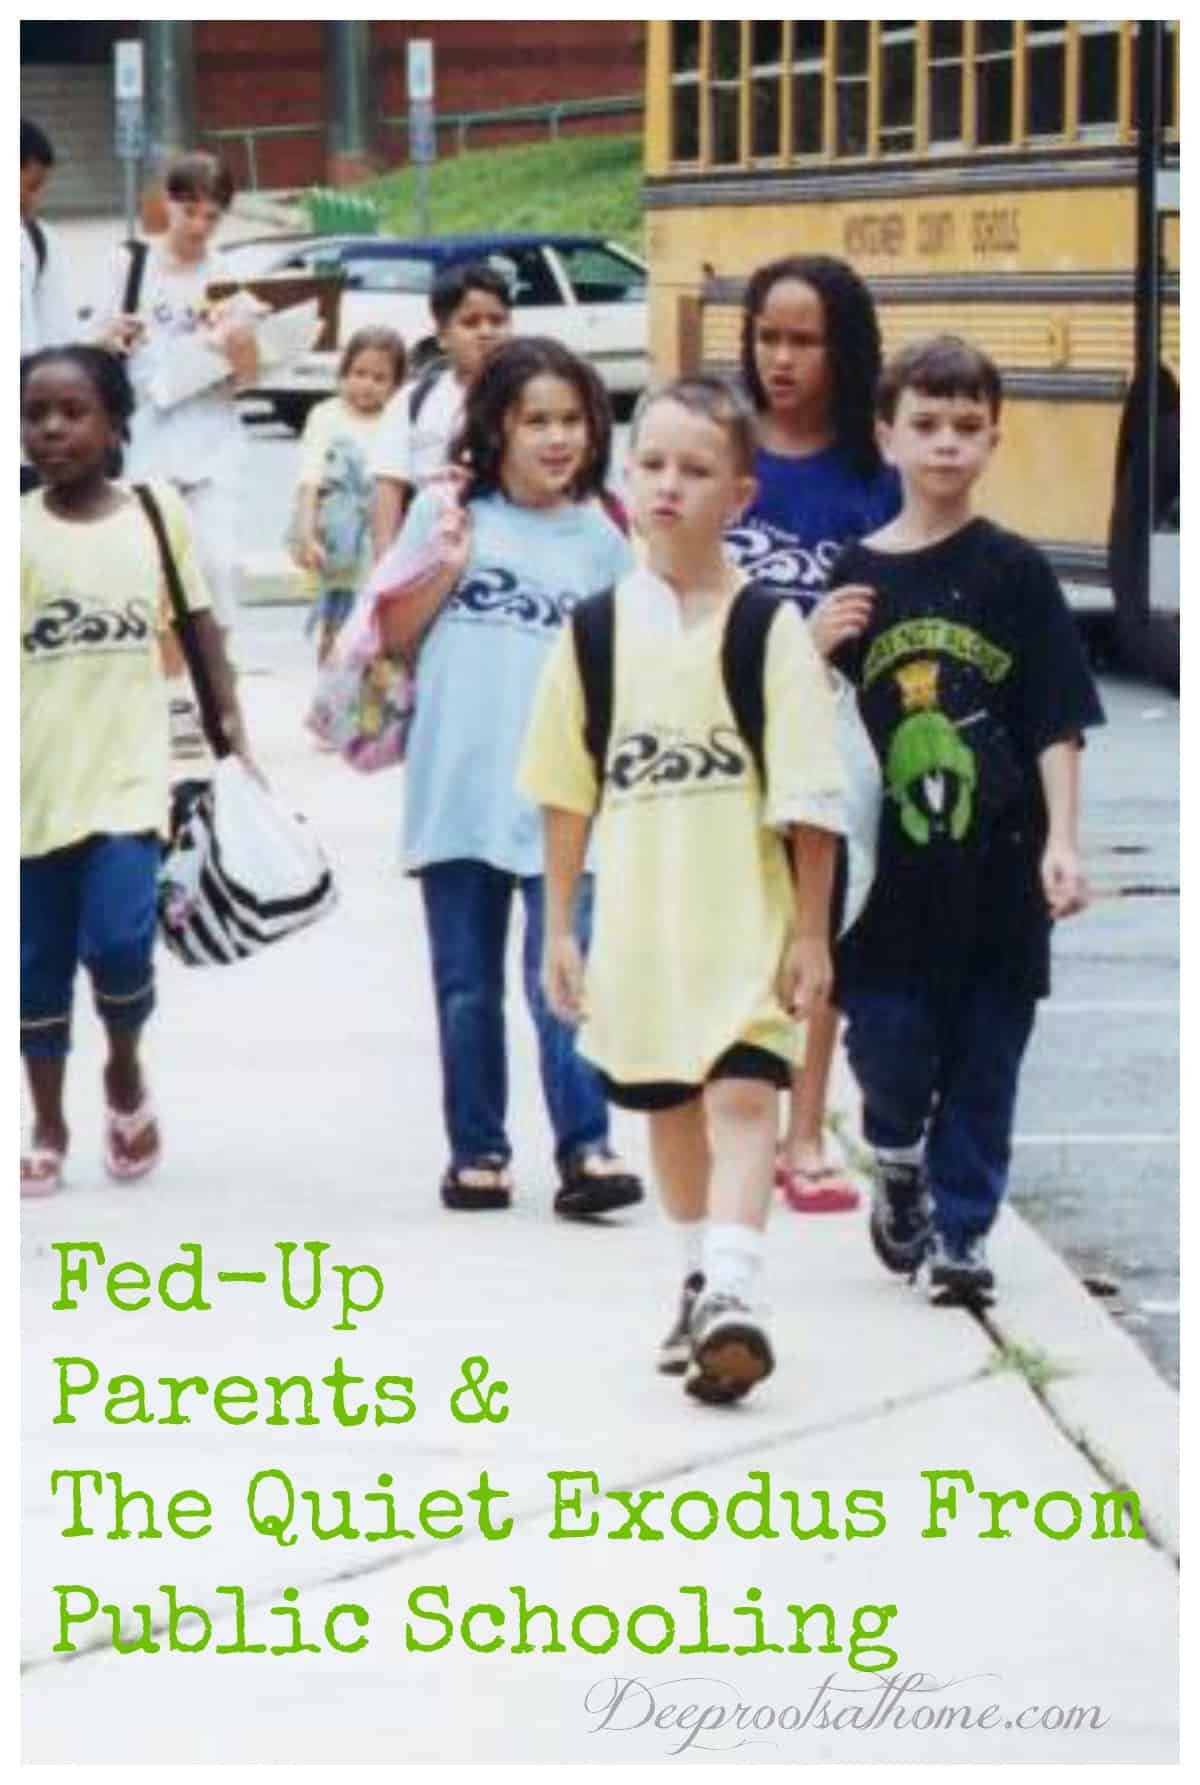 Fed-Up Parents & The Quiet Exodus From Public Schooling. Tired and stoic children walking to their school buses.